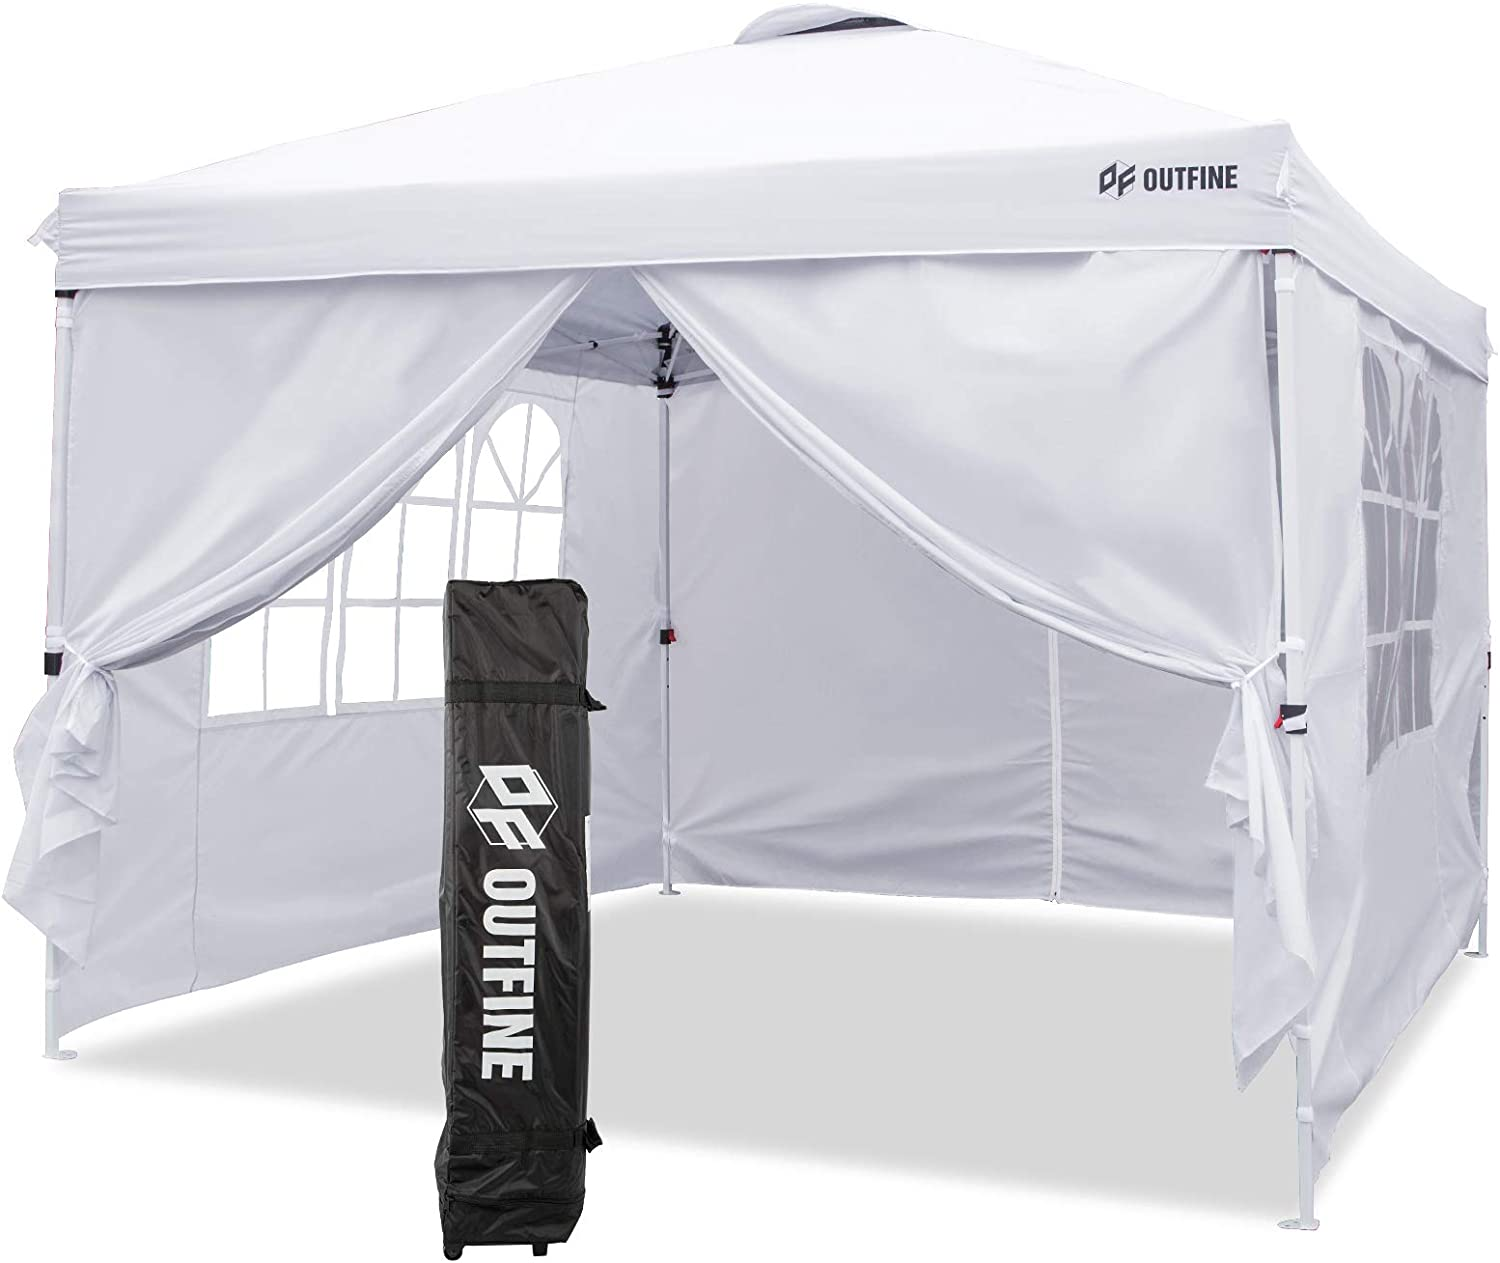 OUTFINE Canopy 10'x10' Pop Up Commercial Instant Gazebo Tent, Fully Waterproof, Outdoor Party Canopies with 4 Removable Zippered Sidewalls, Stakes x8, Ropes x4 (White, 1010FT)